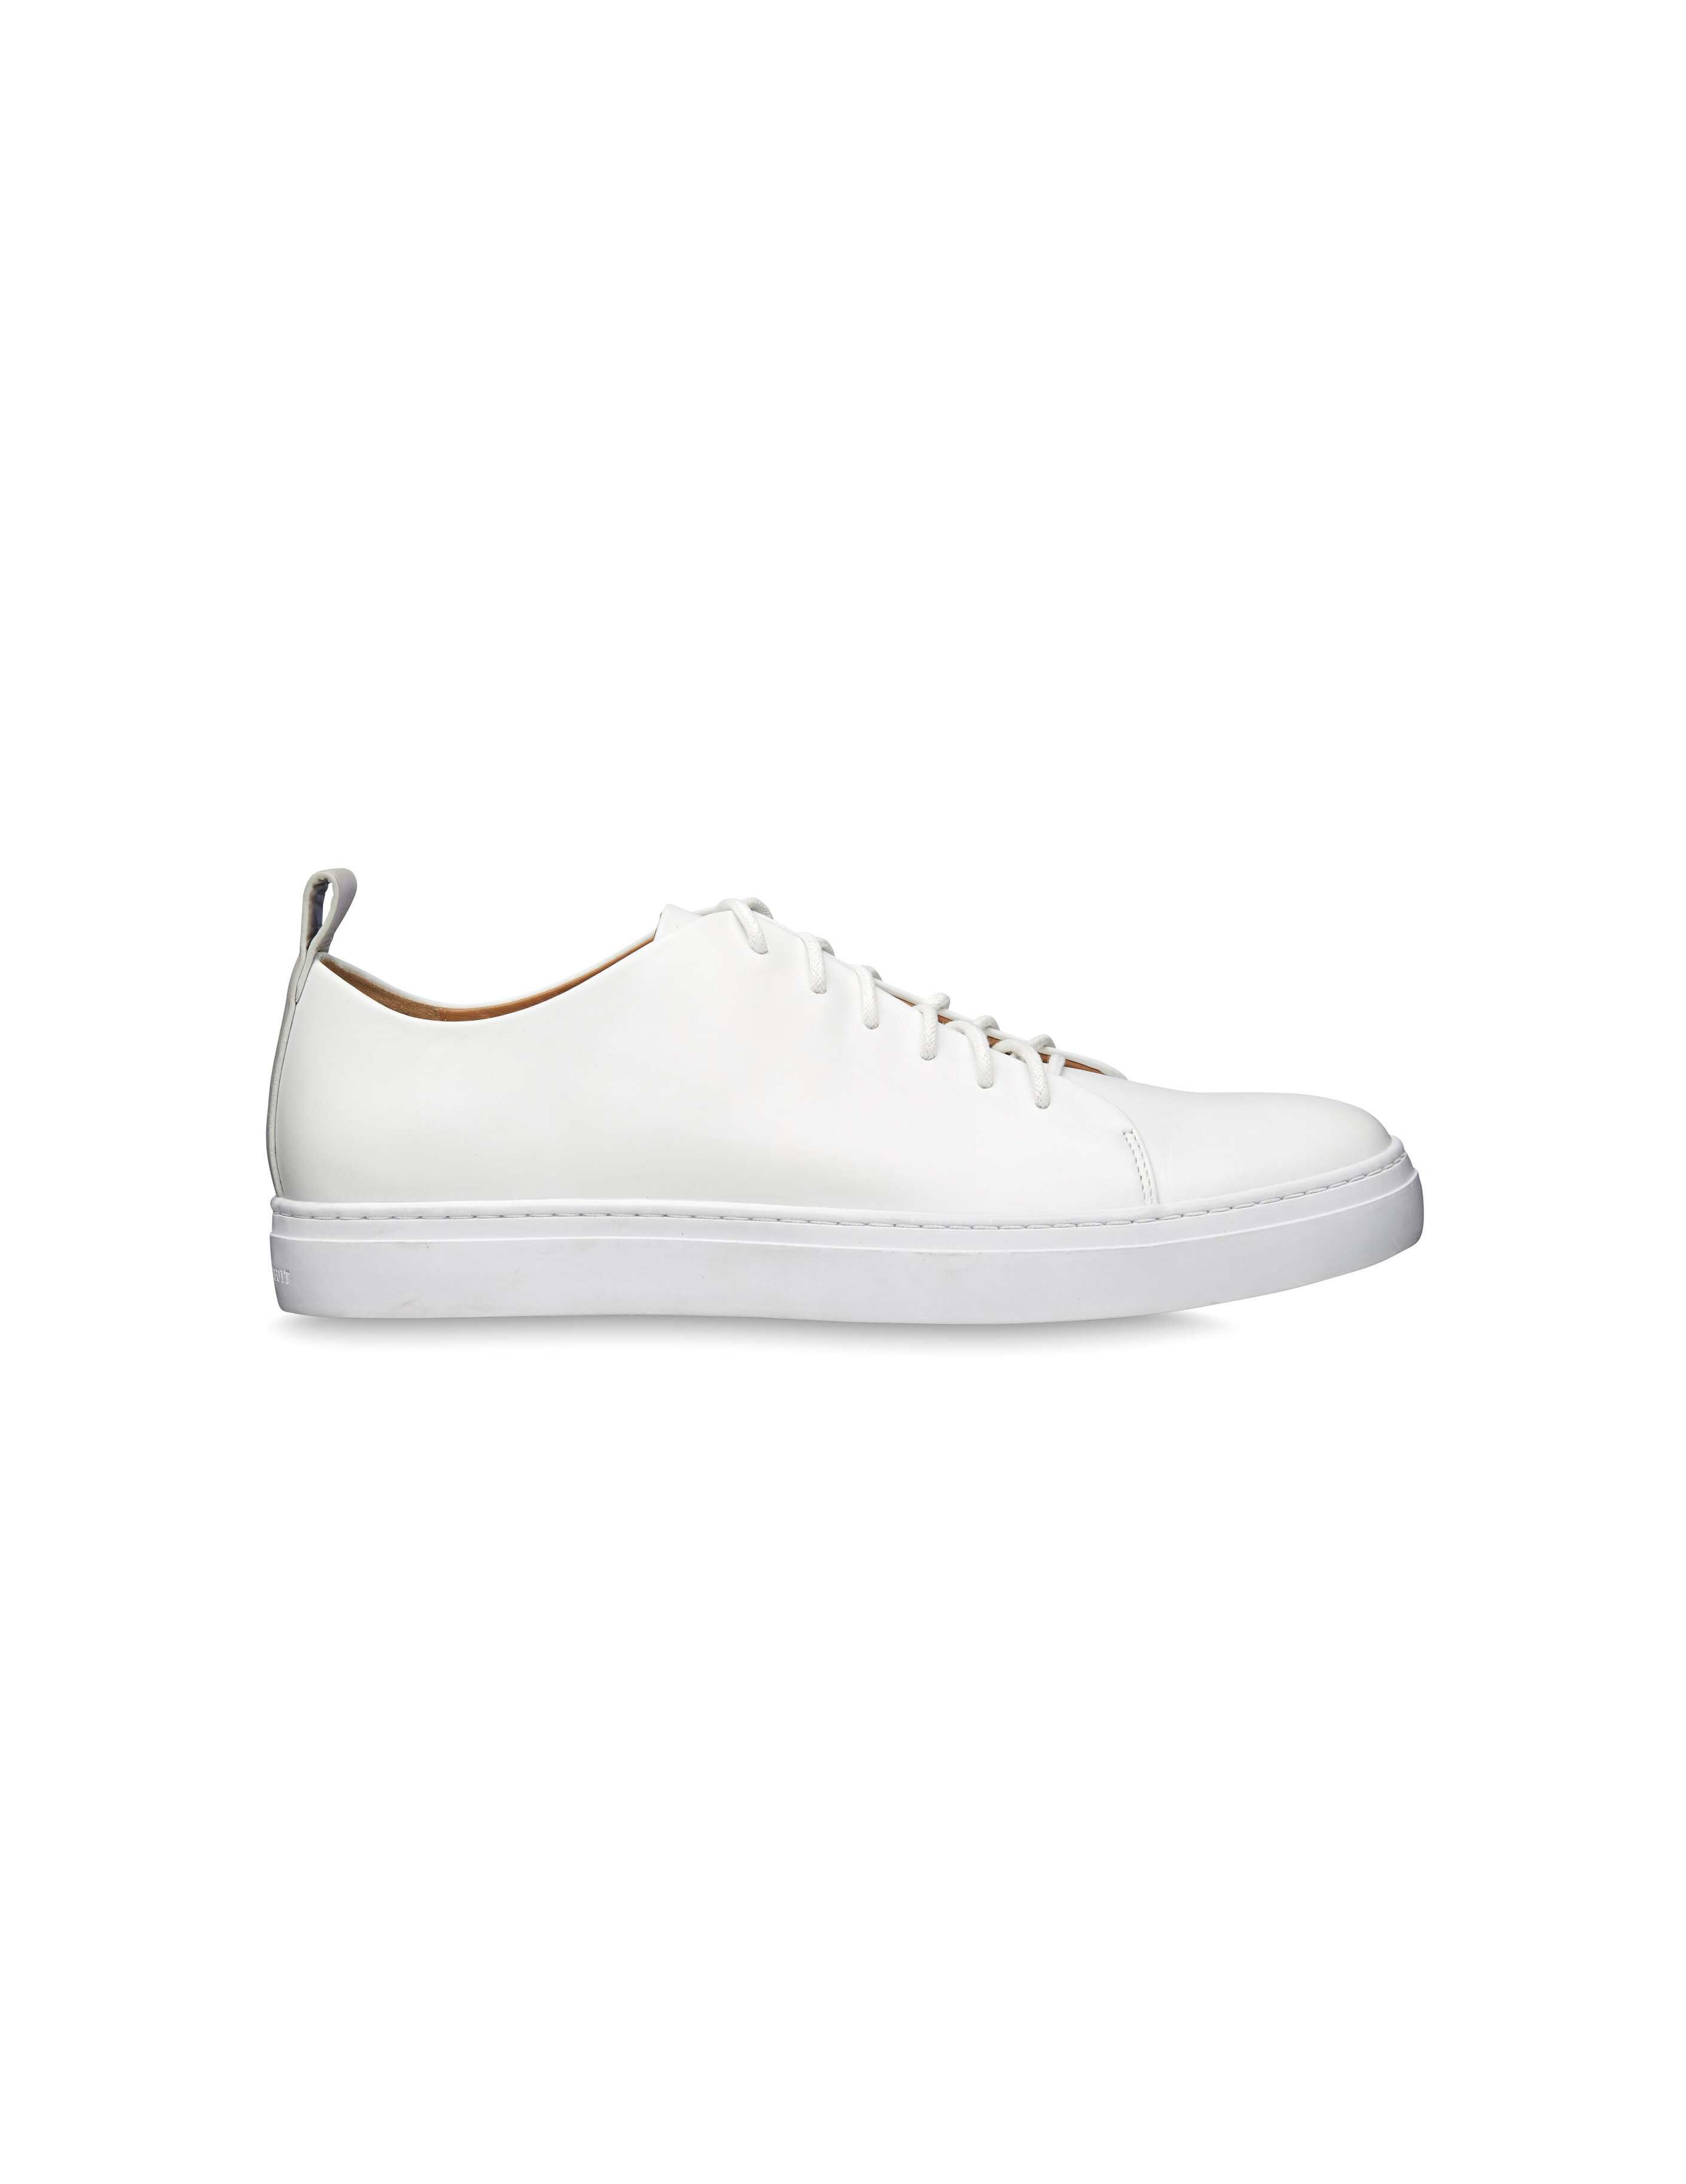 White Leather Brukare Sneakers Tiger Of Sweden tLFoW